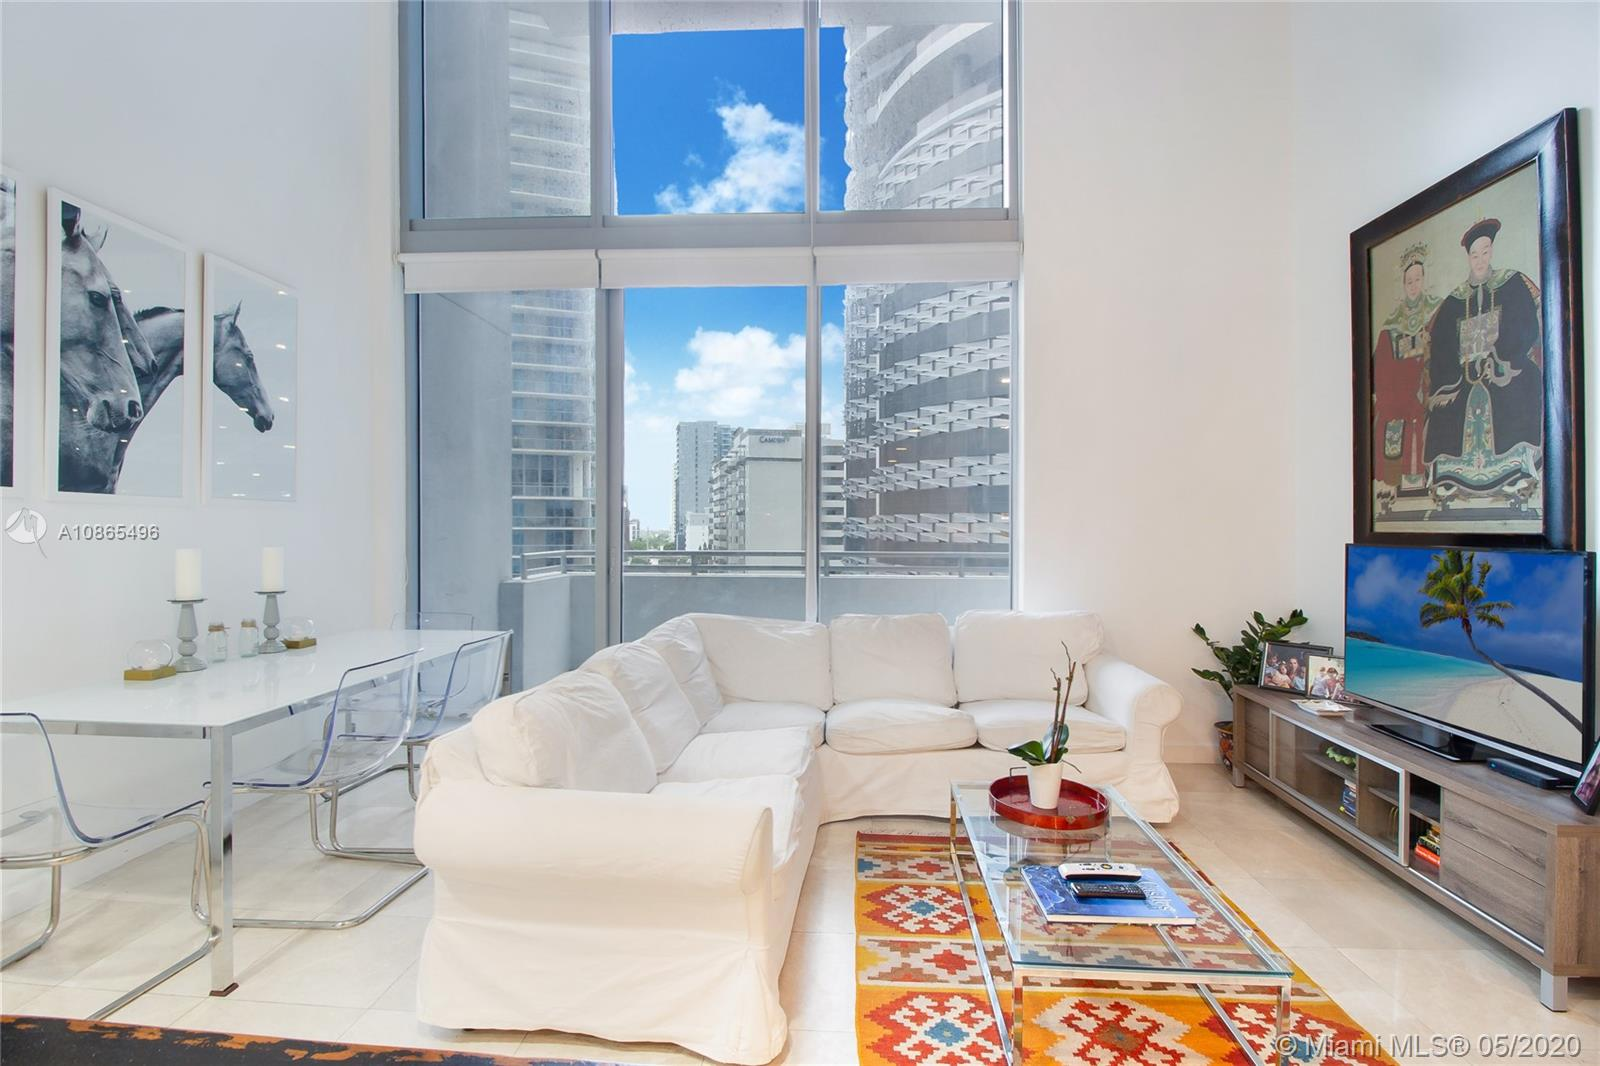 BEAUTIFUL LOFT APARTMENT ON BRICKELL, MARBLE FLOORS THROUGHOUT, WINDOW TREATMENTS, GOURMET KITCHEN AND BEAUTIFUL POOL VIEW; GREAT AMENITIES INCLUDING POOL ROOM, MASSAGE ROOM, VIRTUAL GOLF, GYM AND WINE ROOM. CLOSE TO MARKET, BARS AND RESTAURANTS AND MINUTES FROM METRO RAIL AND MONO RAIL. COMMON AREA DEPOSIT REQUIRED BY ASSOCIATION PAID BY LANDLORD. FIRST & 2 SECURITY DEPOSITS.